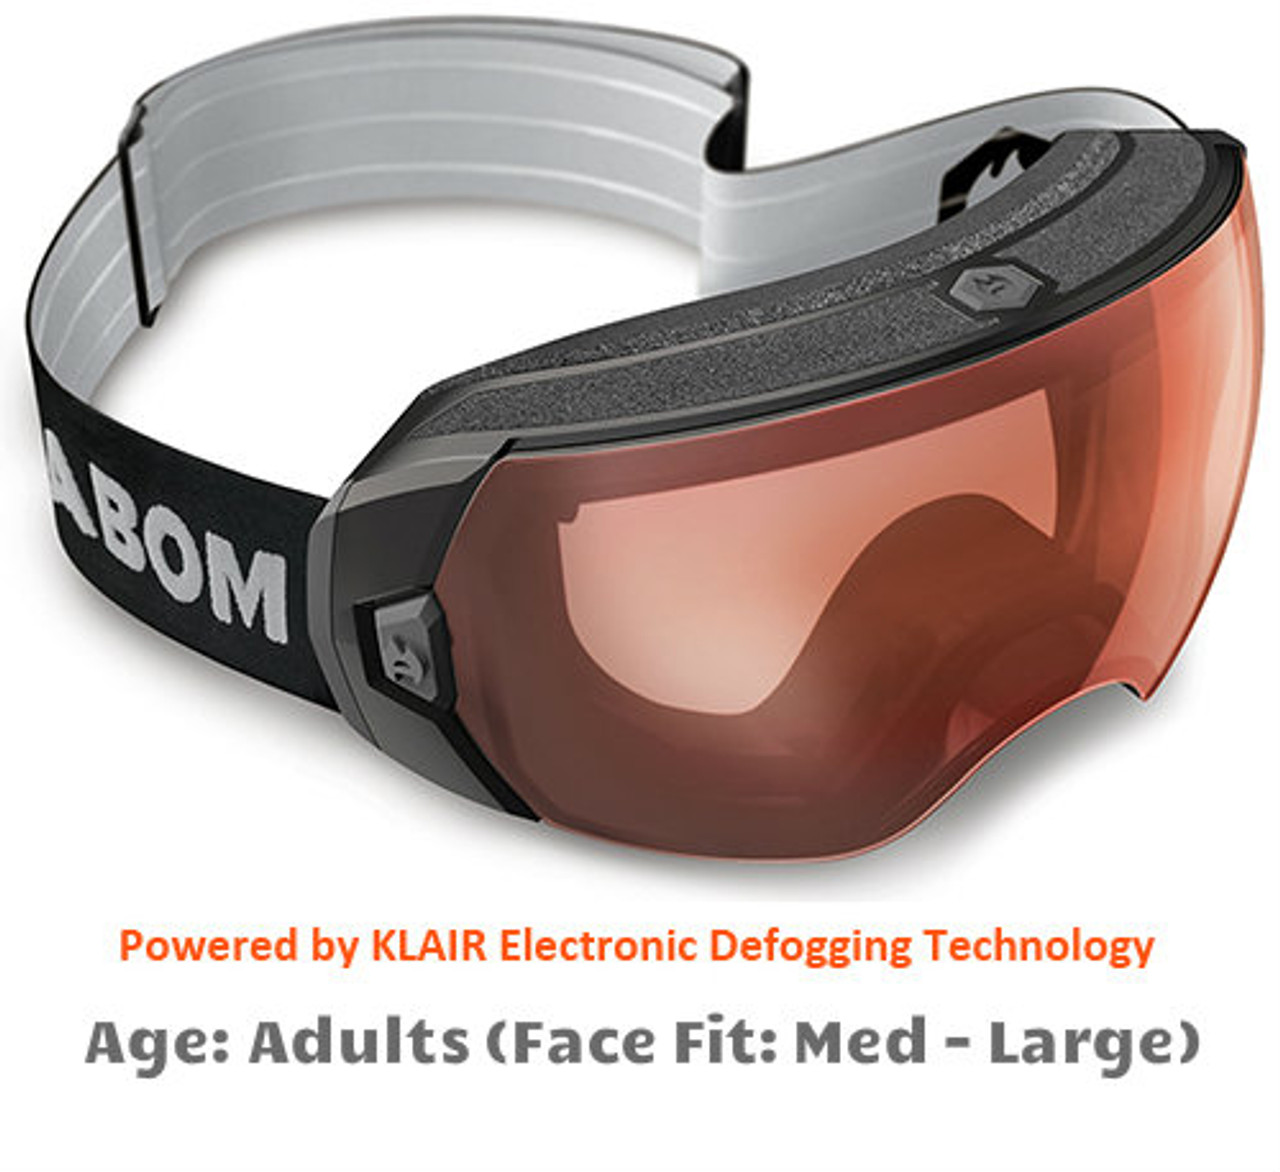 7a1ef18e89e Abom Heet Resolution Red Snow Goggles - Adult Sized Medium to Large Face Fit